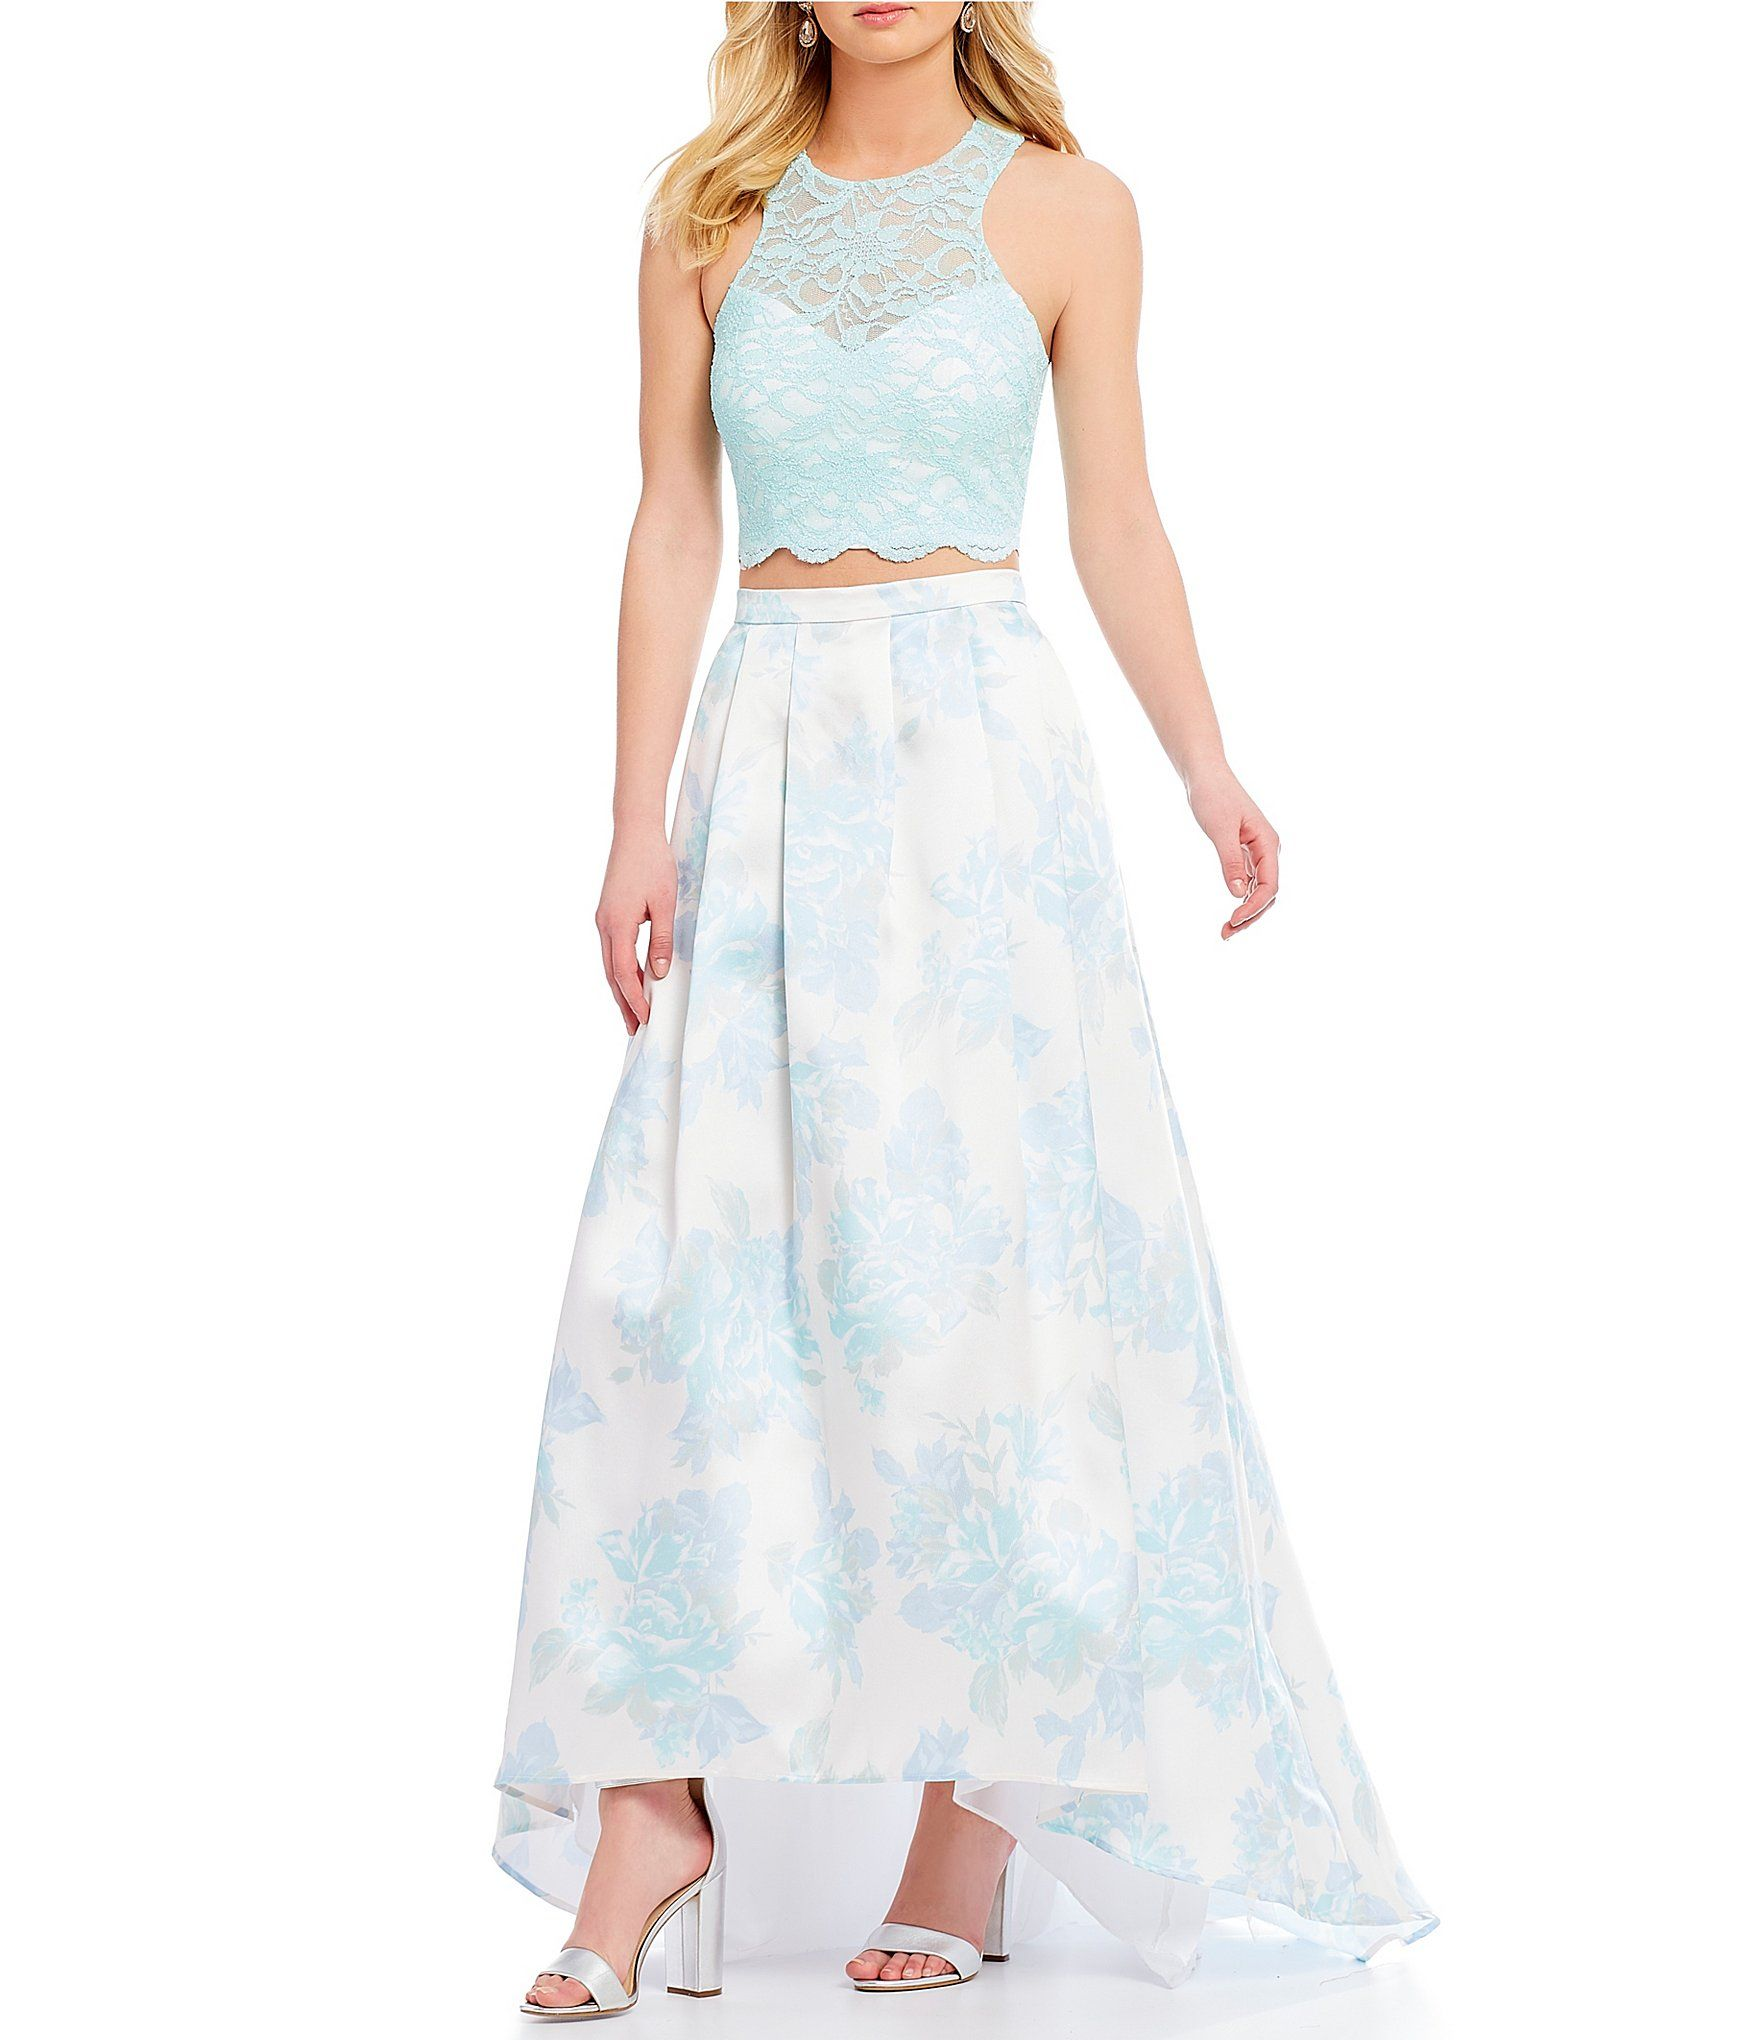 Morgan u co lace xback top with floral skirt twopiece long dress